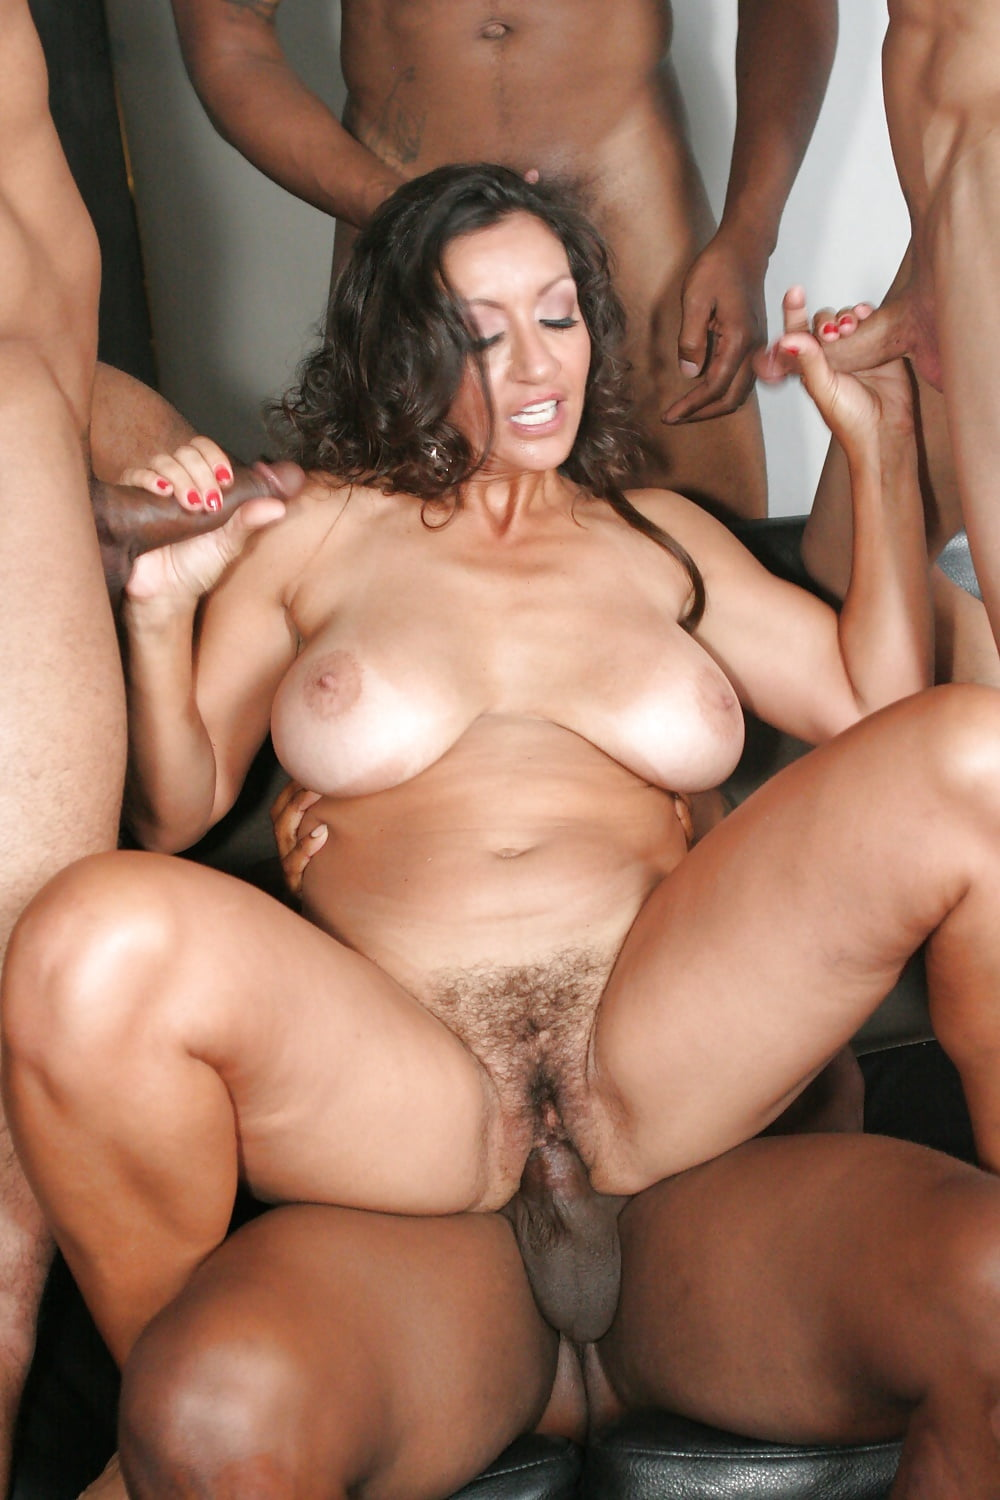 Sdraw latina first gangbang